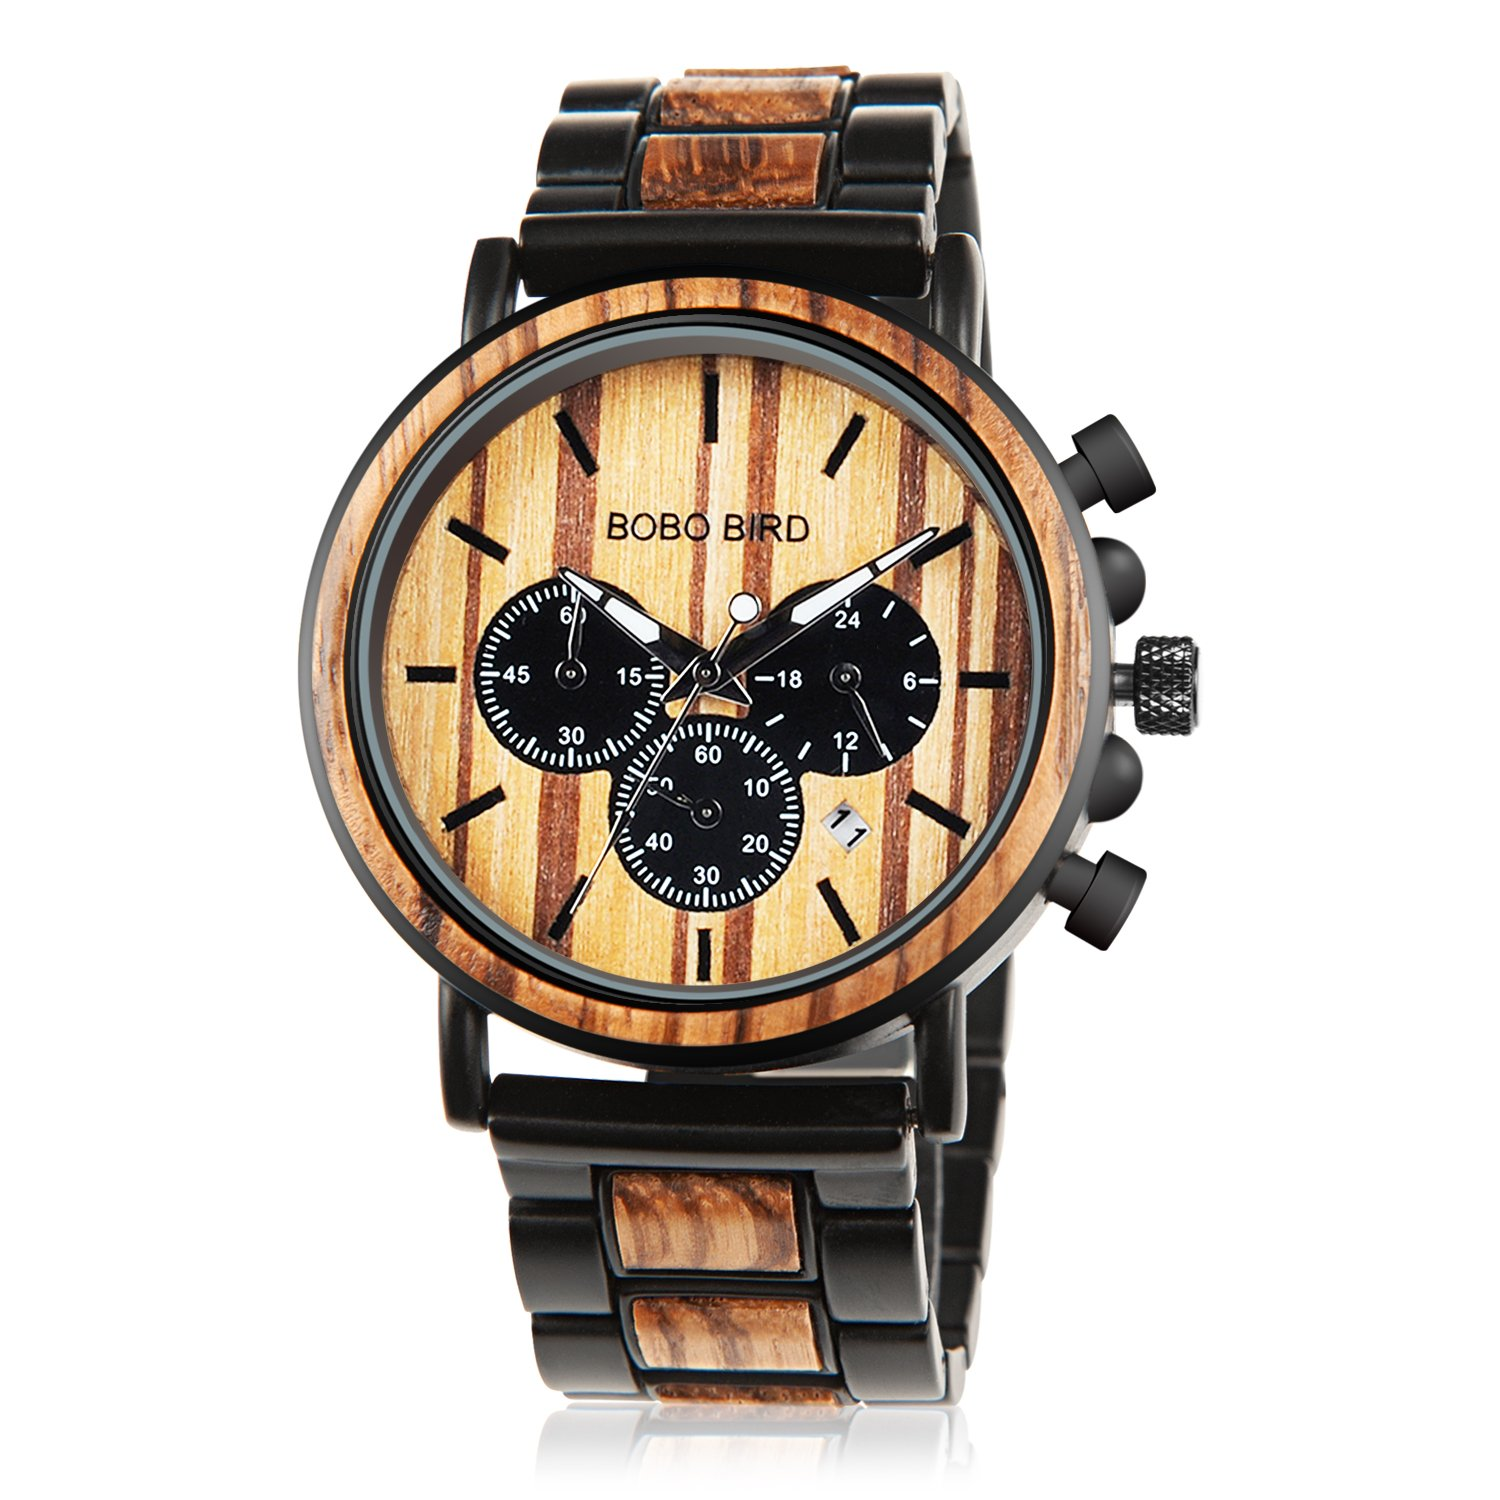 Mens Wooden Watch with Night Luminous Silver Needle 44MM Large Size Luxury Stylish Chronograph Sports Military Quartz Wood Wirst Watch Wood & Stainless Steel Combined Retro Classic Watches by GUANKE